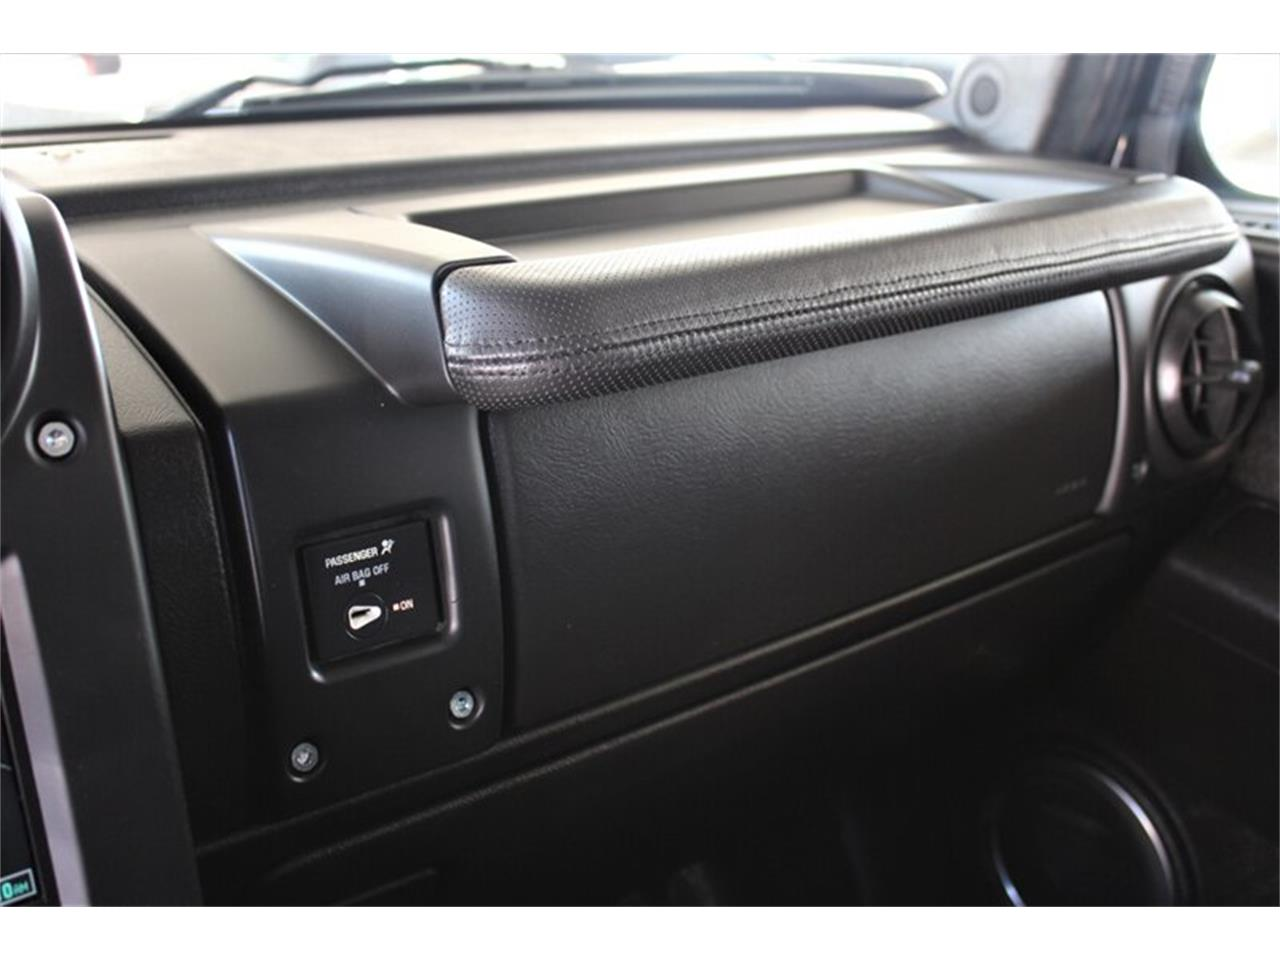 Large Picture of '05 Hummer H2 located in Sherman Oaks California - $24,995.00 Offered by Monza Car - Q1ZZ